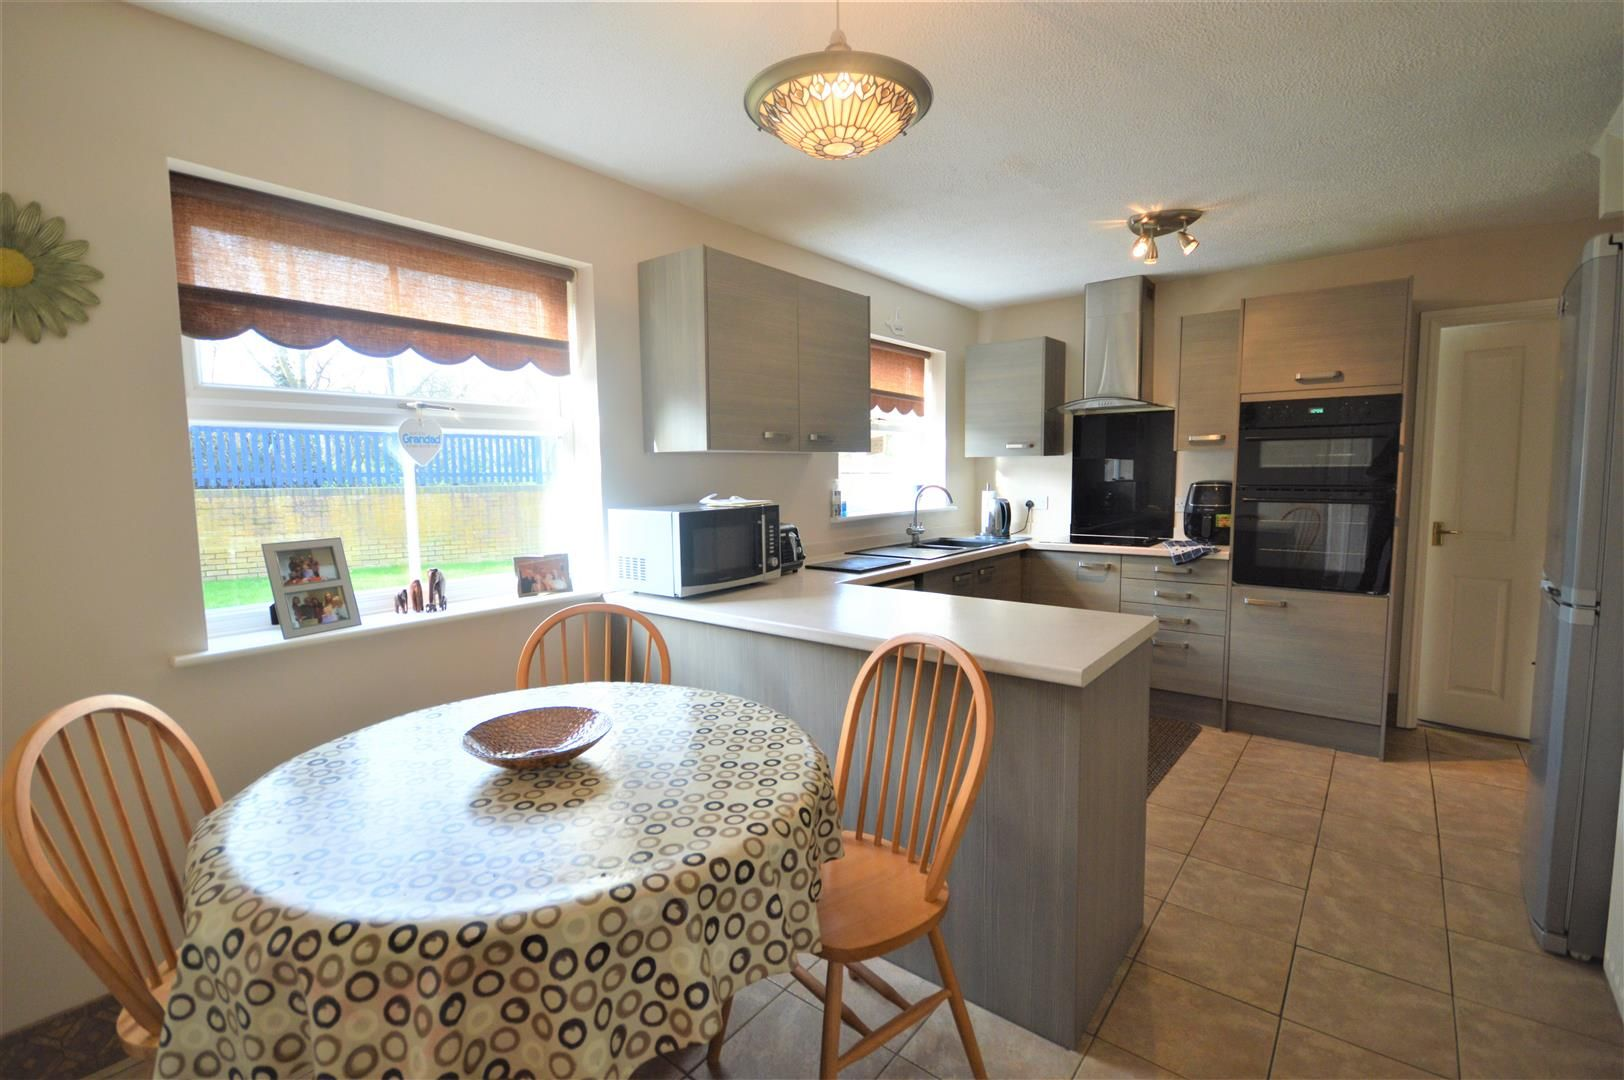 5 bed detached for sale in Leominster 3